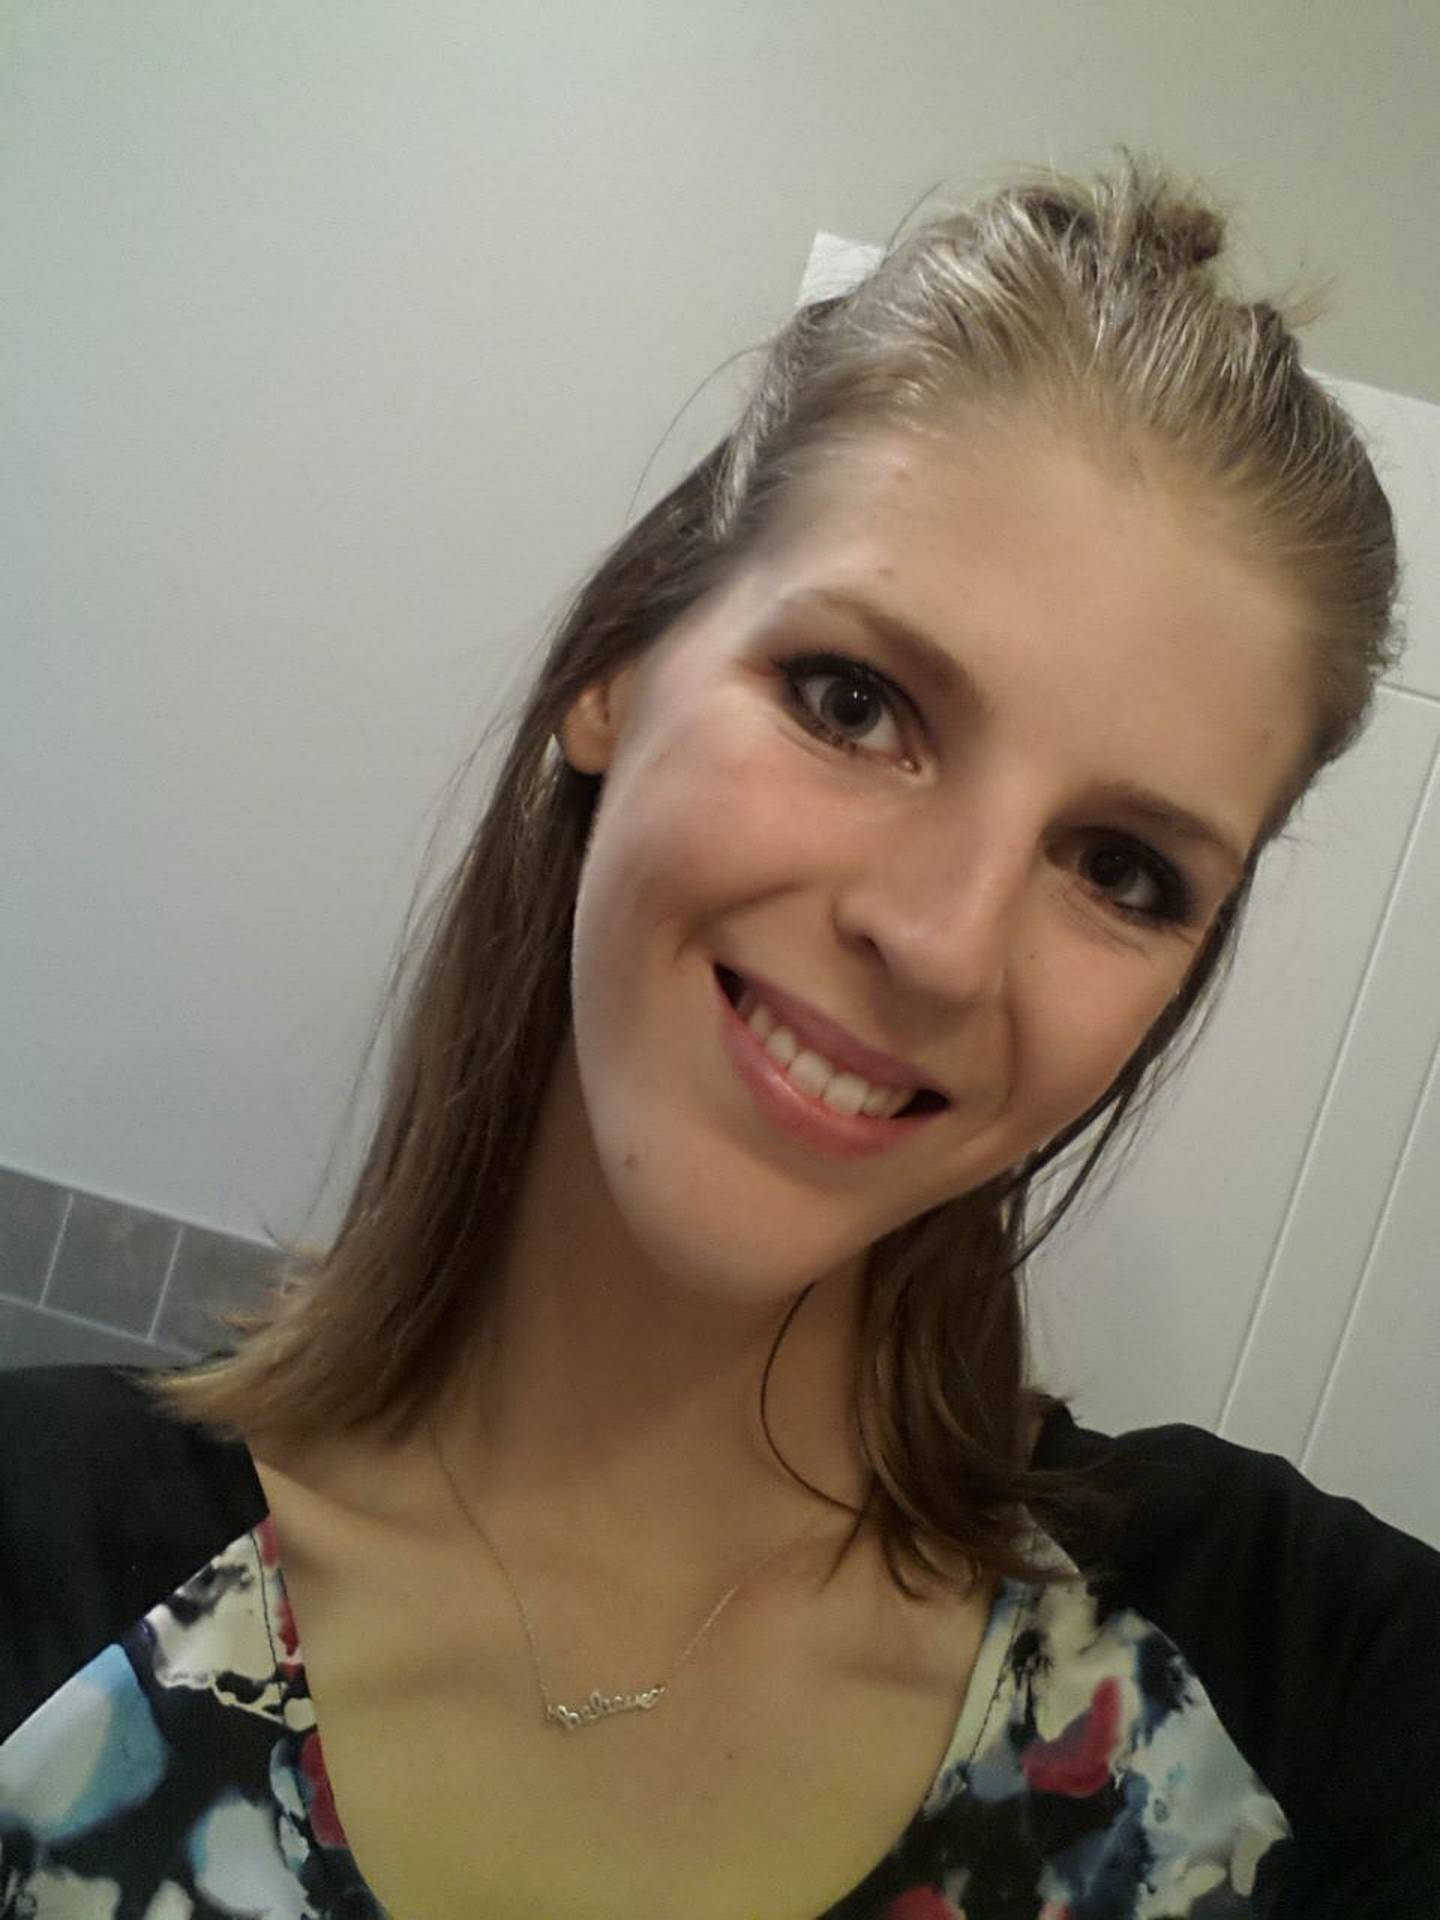 """Megan Nelis says her body was """"wasting away"""" as anorexia took over her life. Photo: Supplied via NZH"""